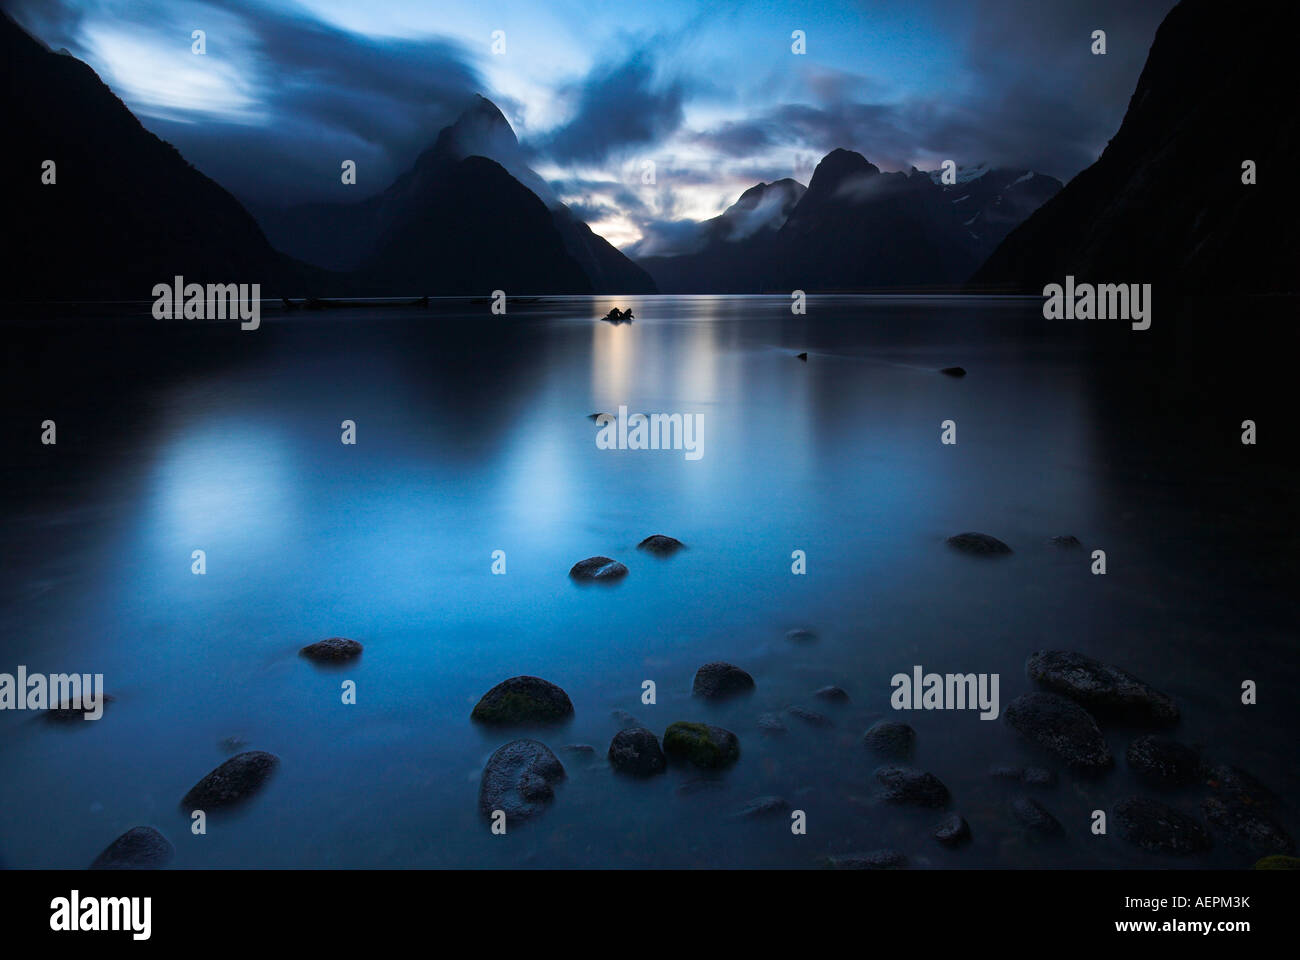 Darkness descends at Milford Sound, Fiordland National Park, New Zealand - Stock Image